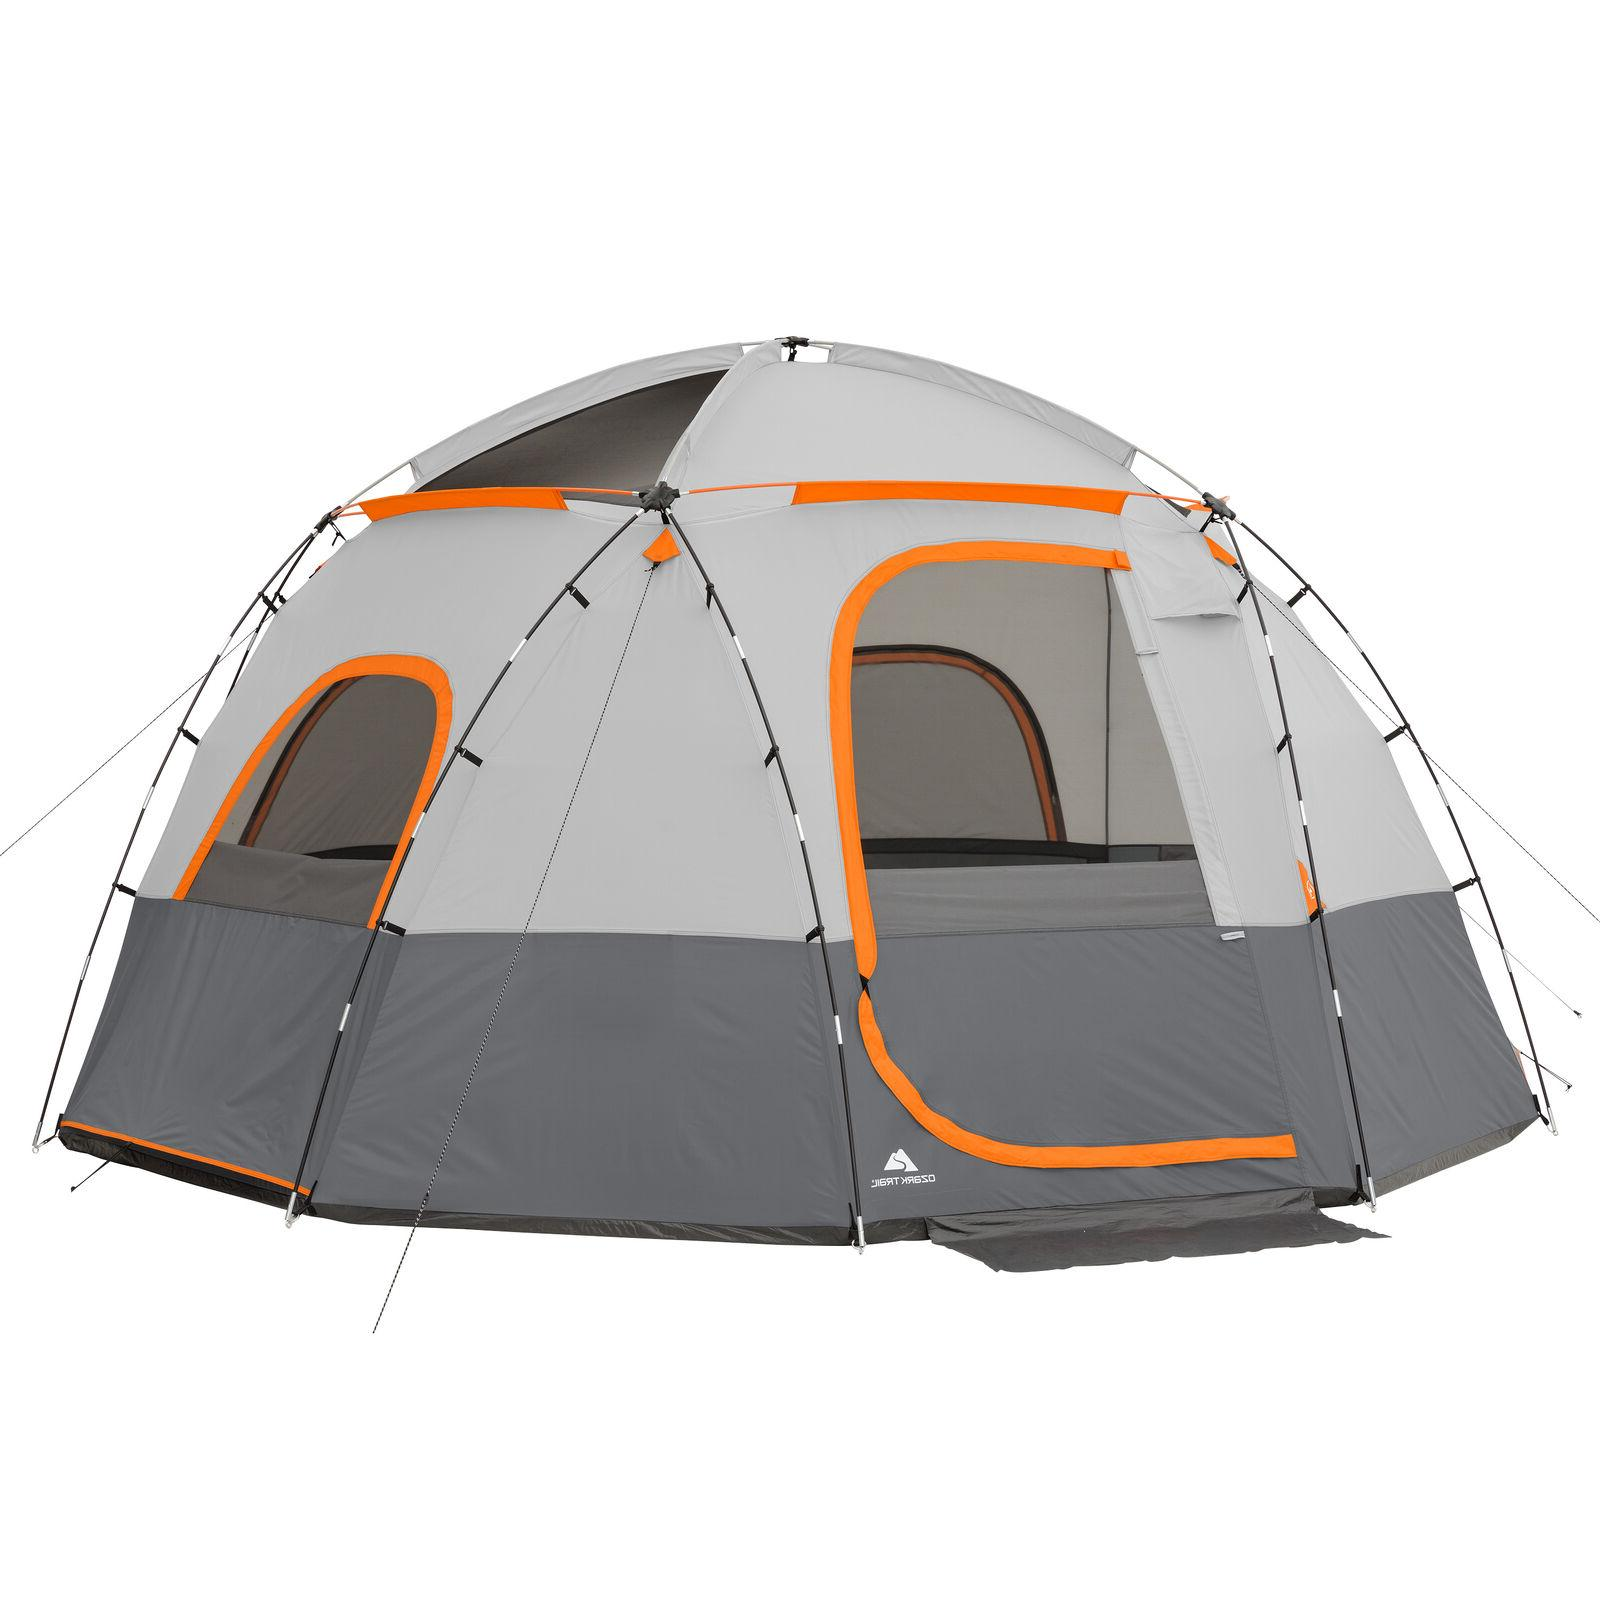 6-Person Ozark Trail Camping Sphere Tent With Rope